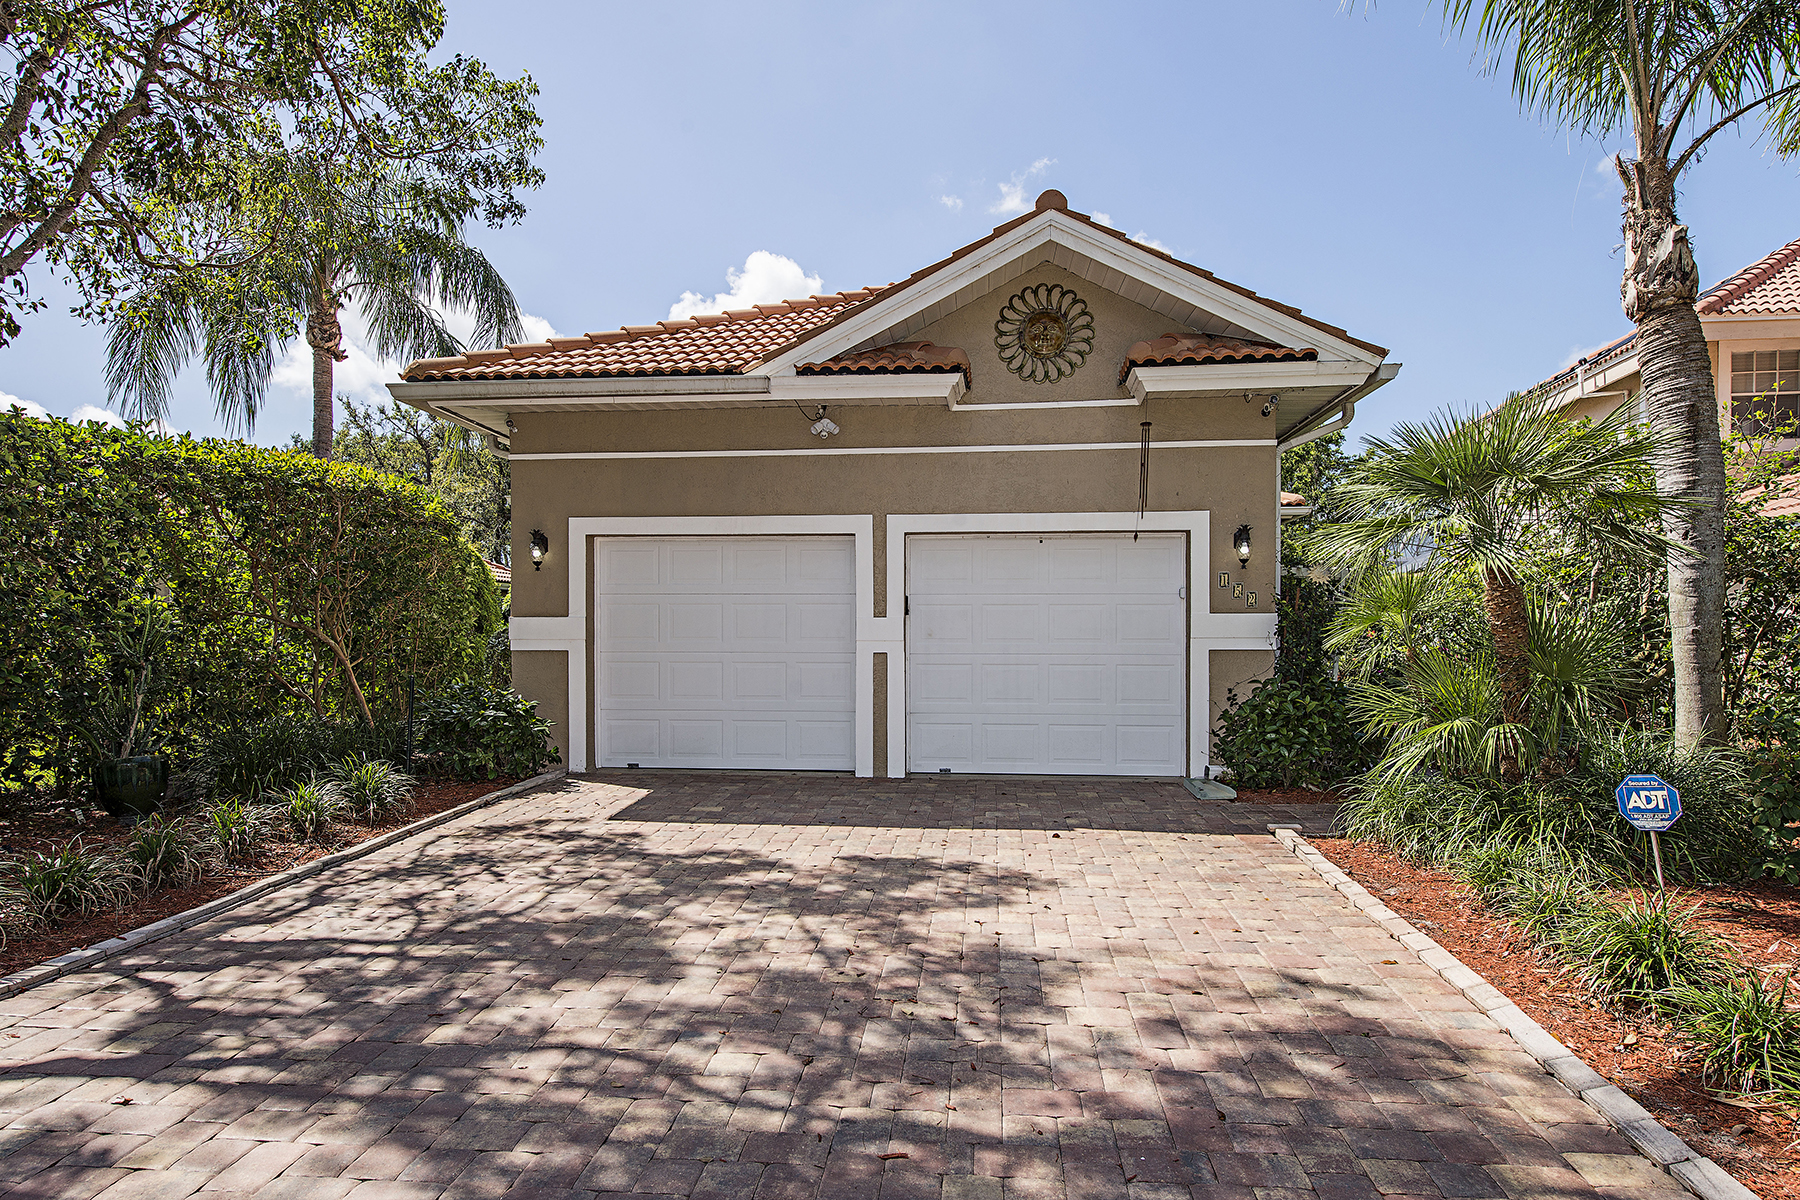 واحد منزل الأسرة للـ Sale في VINEYARDS - NAPA RIDGE 152 Napa Ridge Way, Vineyards, Naples, Florida, 34119 United States